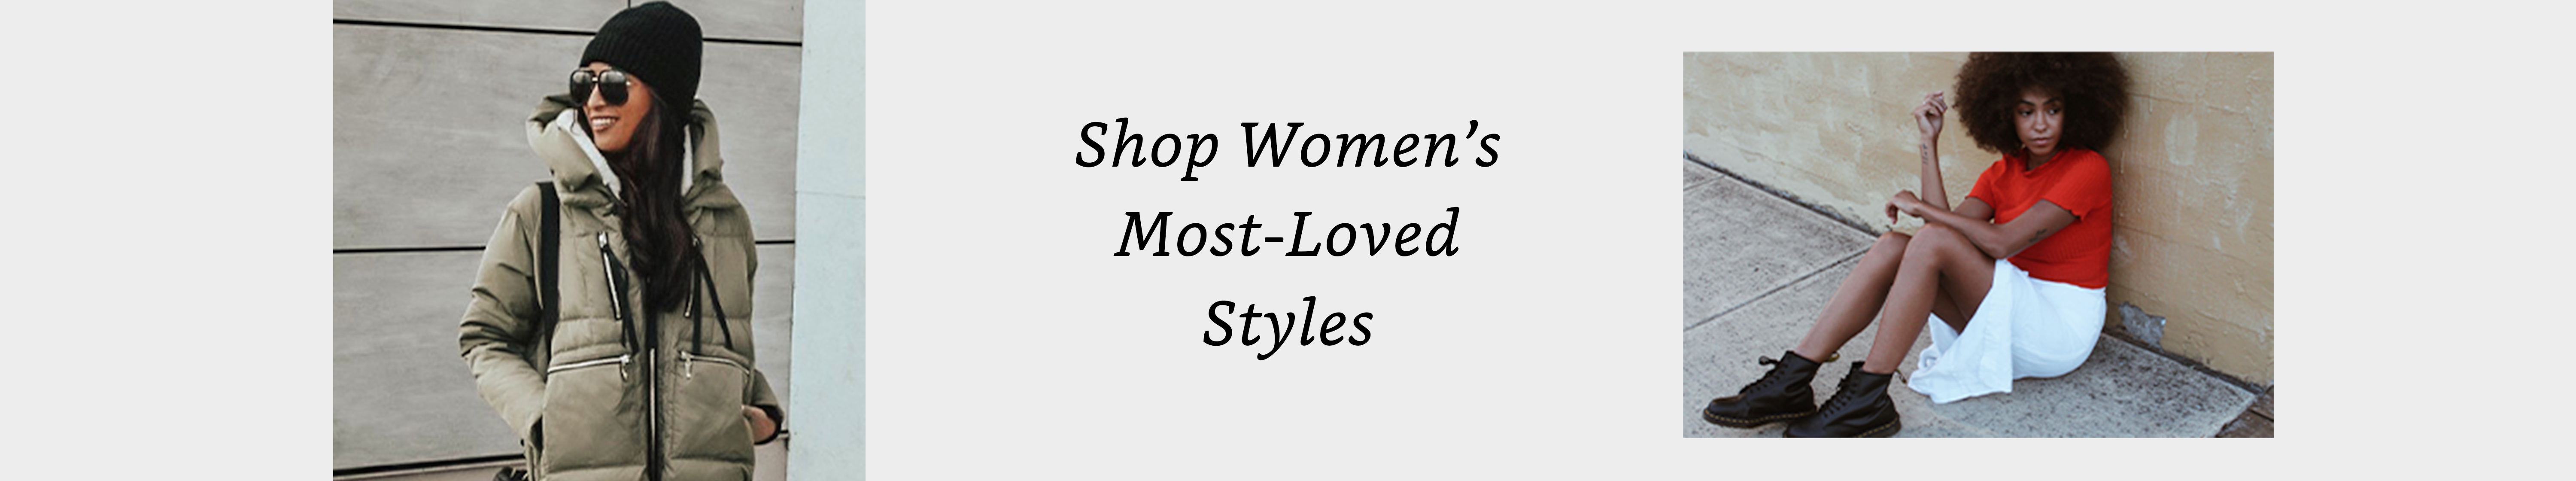 Shop Women's Most-Loved Styles